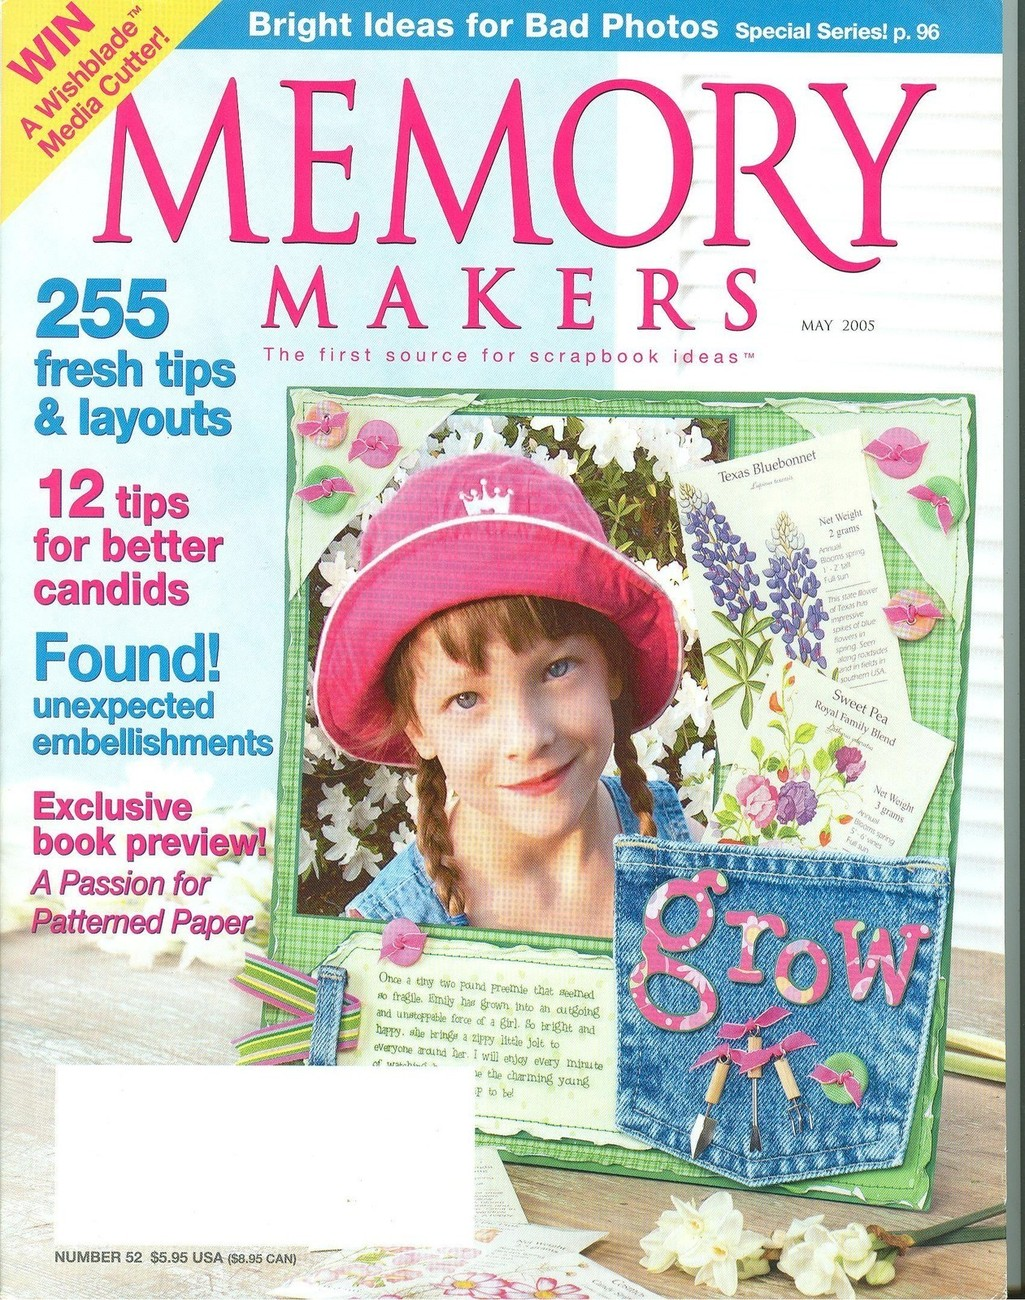 Memory Makers May 2005-255 Fresh Tips & Layouts;Embellishments;Tips for Candids